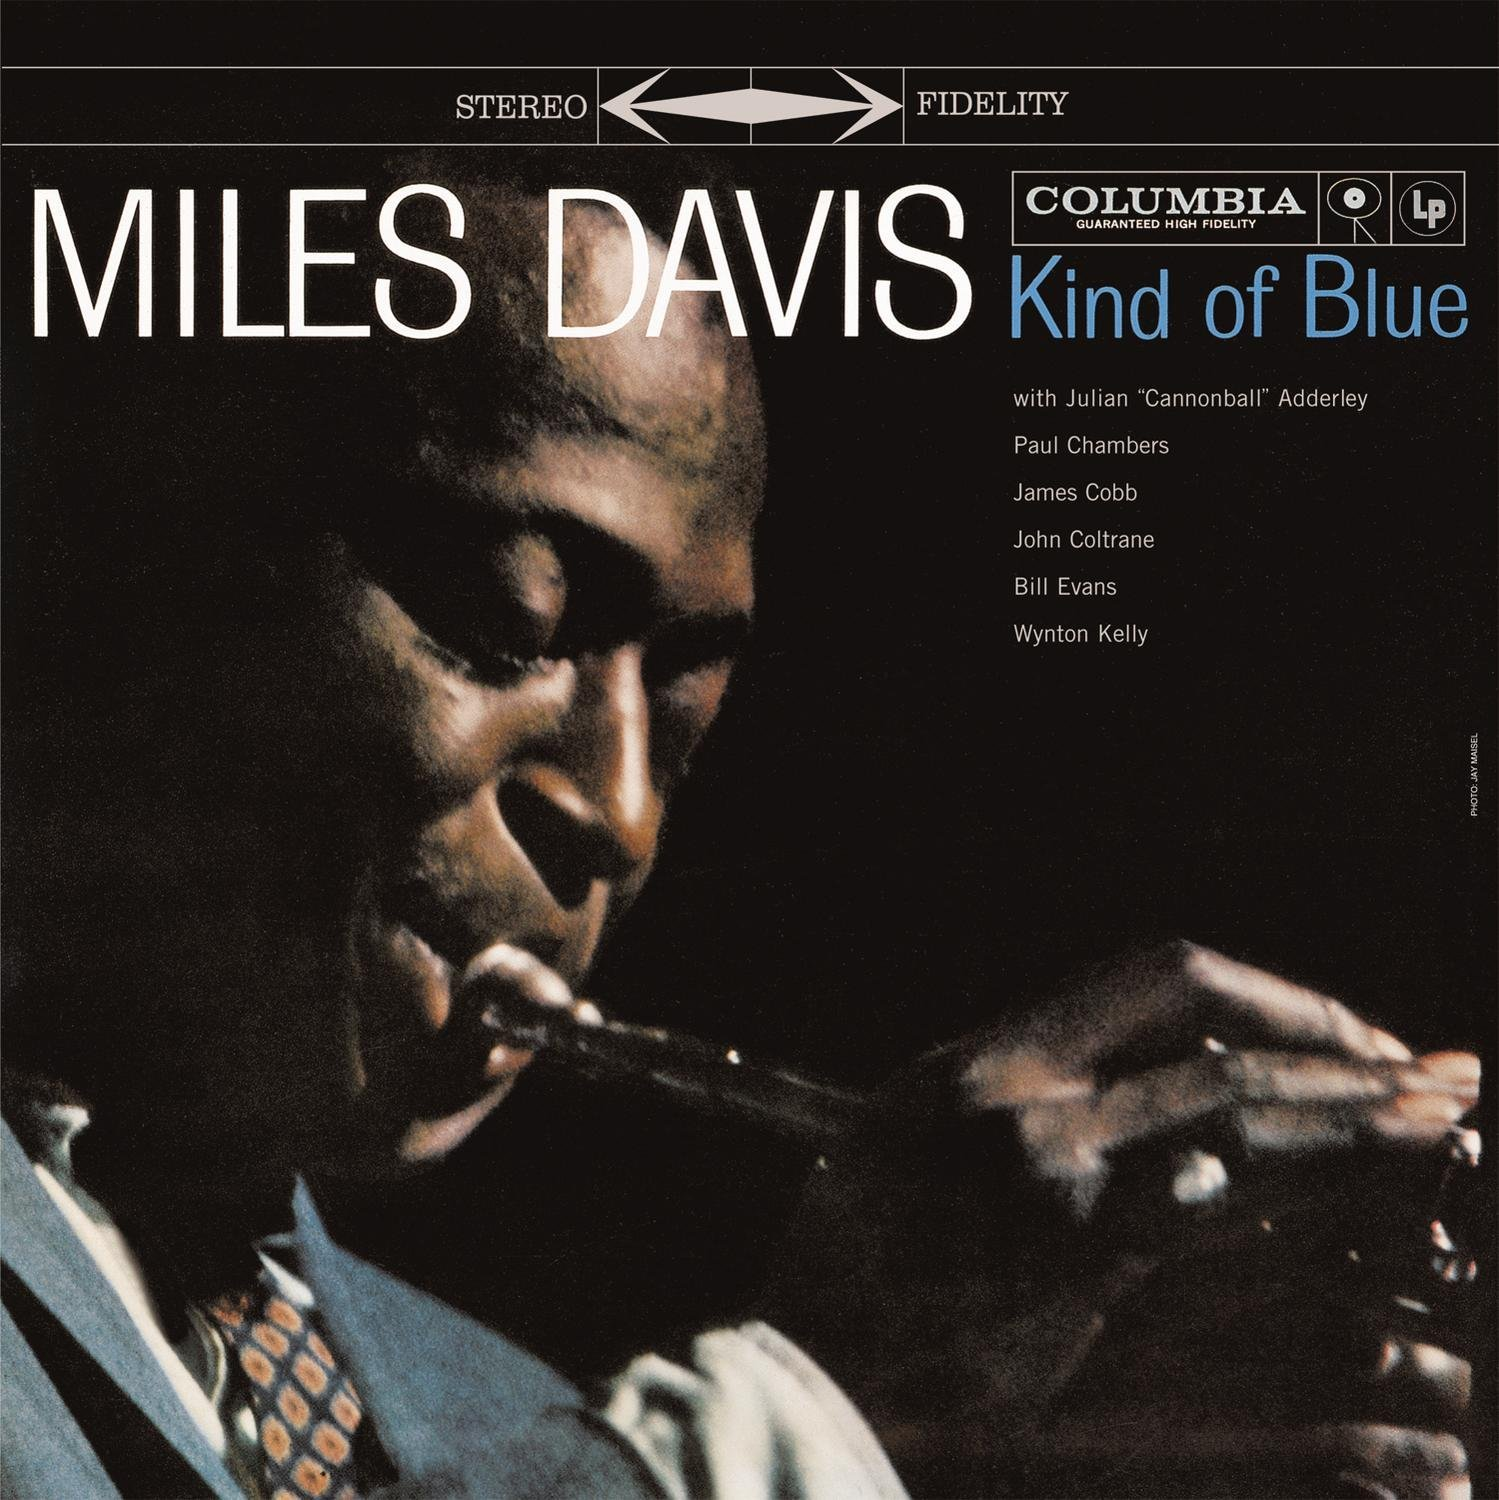 MILES DAVIS - KIND OF BLUE $20 deluxe gatefold edition 180 gram vinyl manufactured in europe printed in 2017